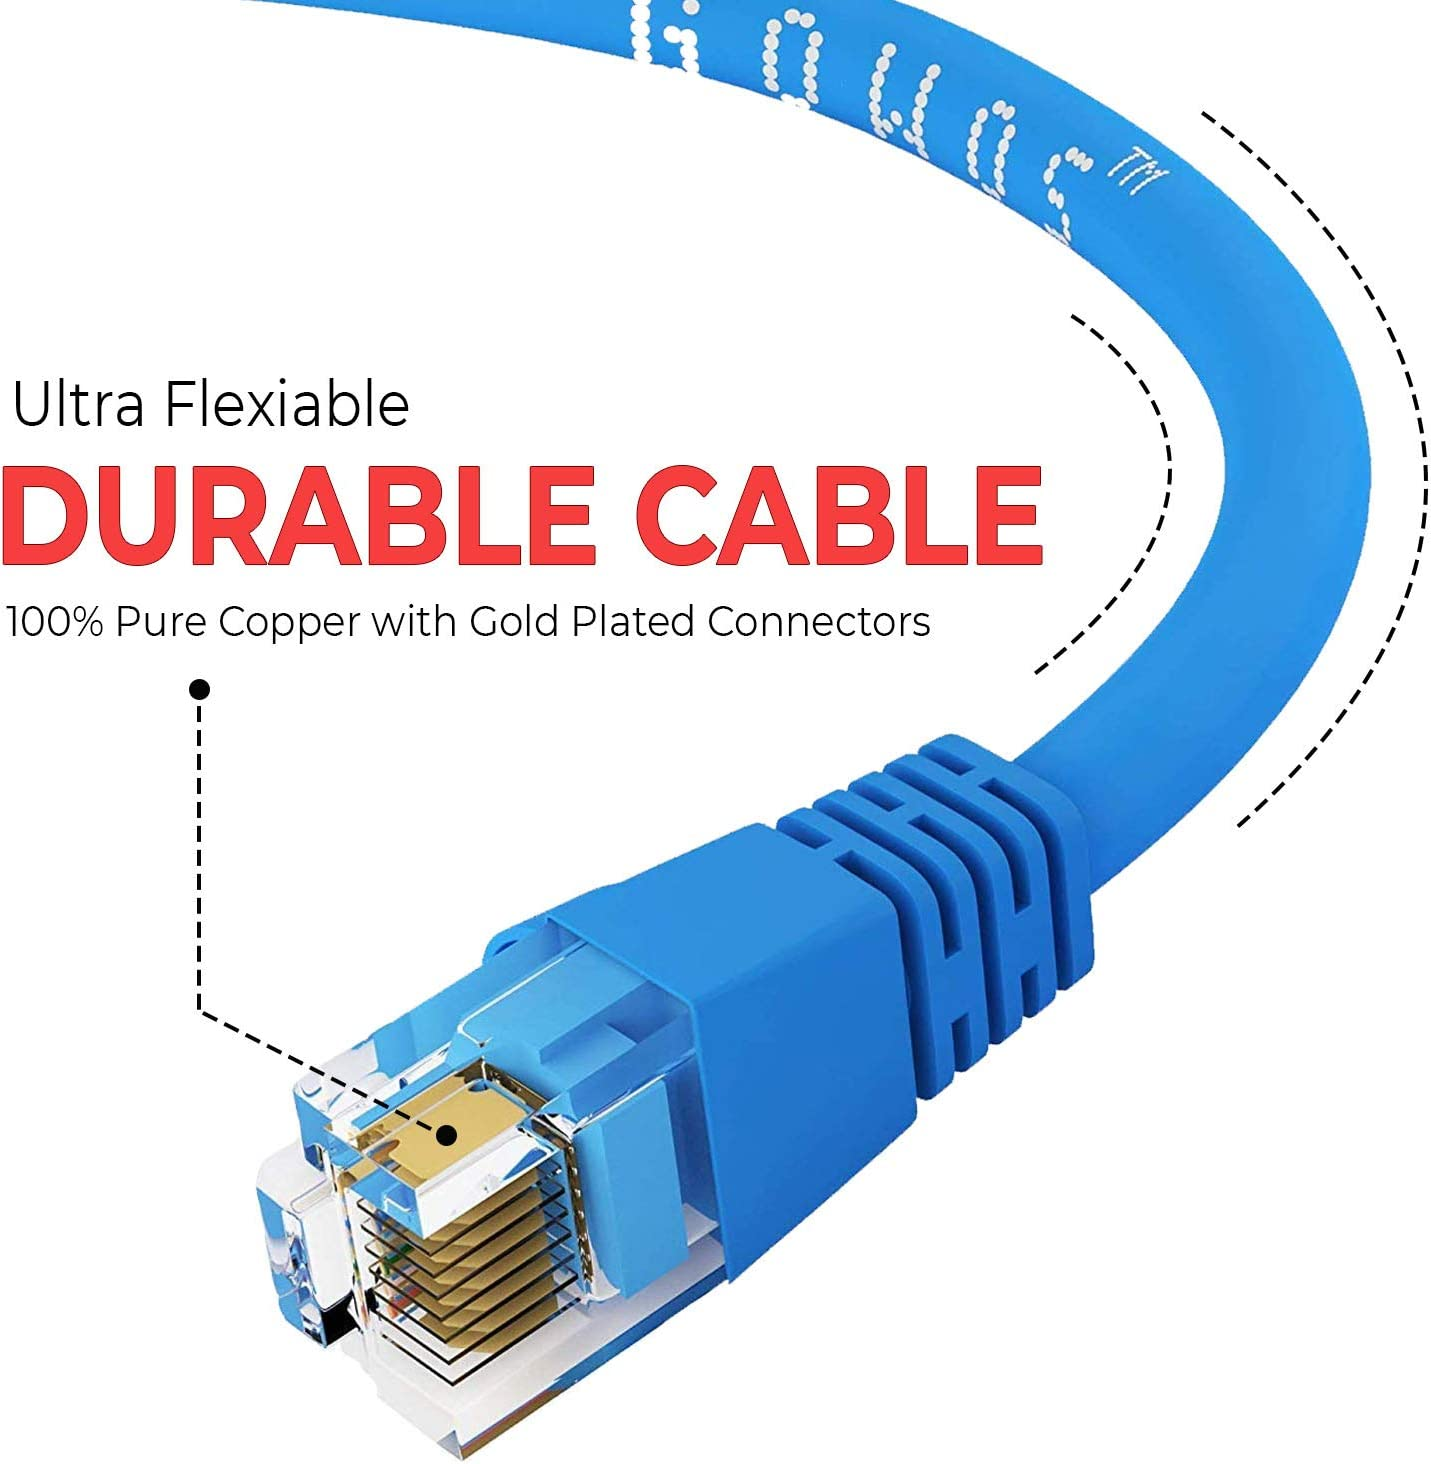 10-Pack - 8 FT Orange 10 Gigabit//Sec High Speed LAN Internet//Patch Cable GOWOS Cat6 Ethernet Cable 24AWG Network Cable with Gold Plated RJ45 Snagless//Molded//Booted Connector 550MHz